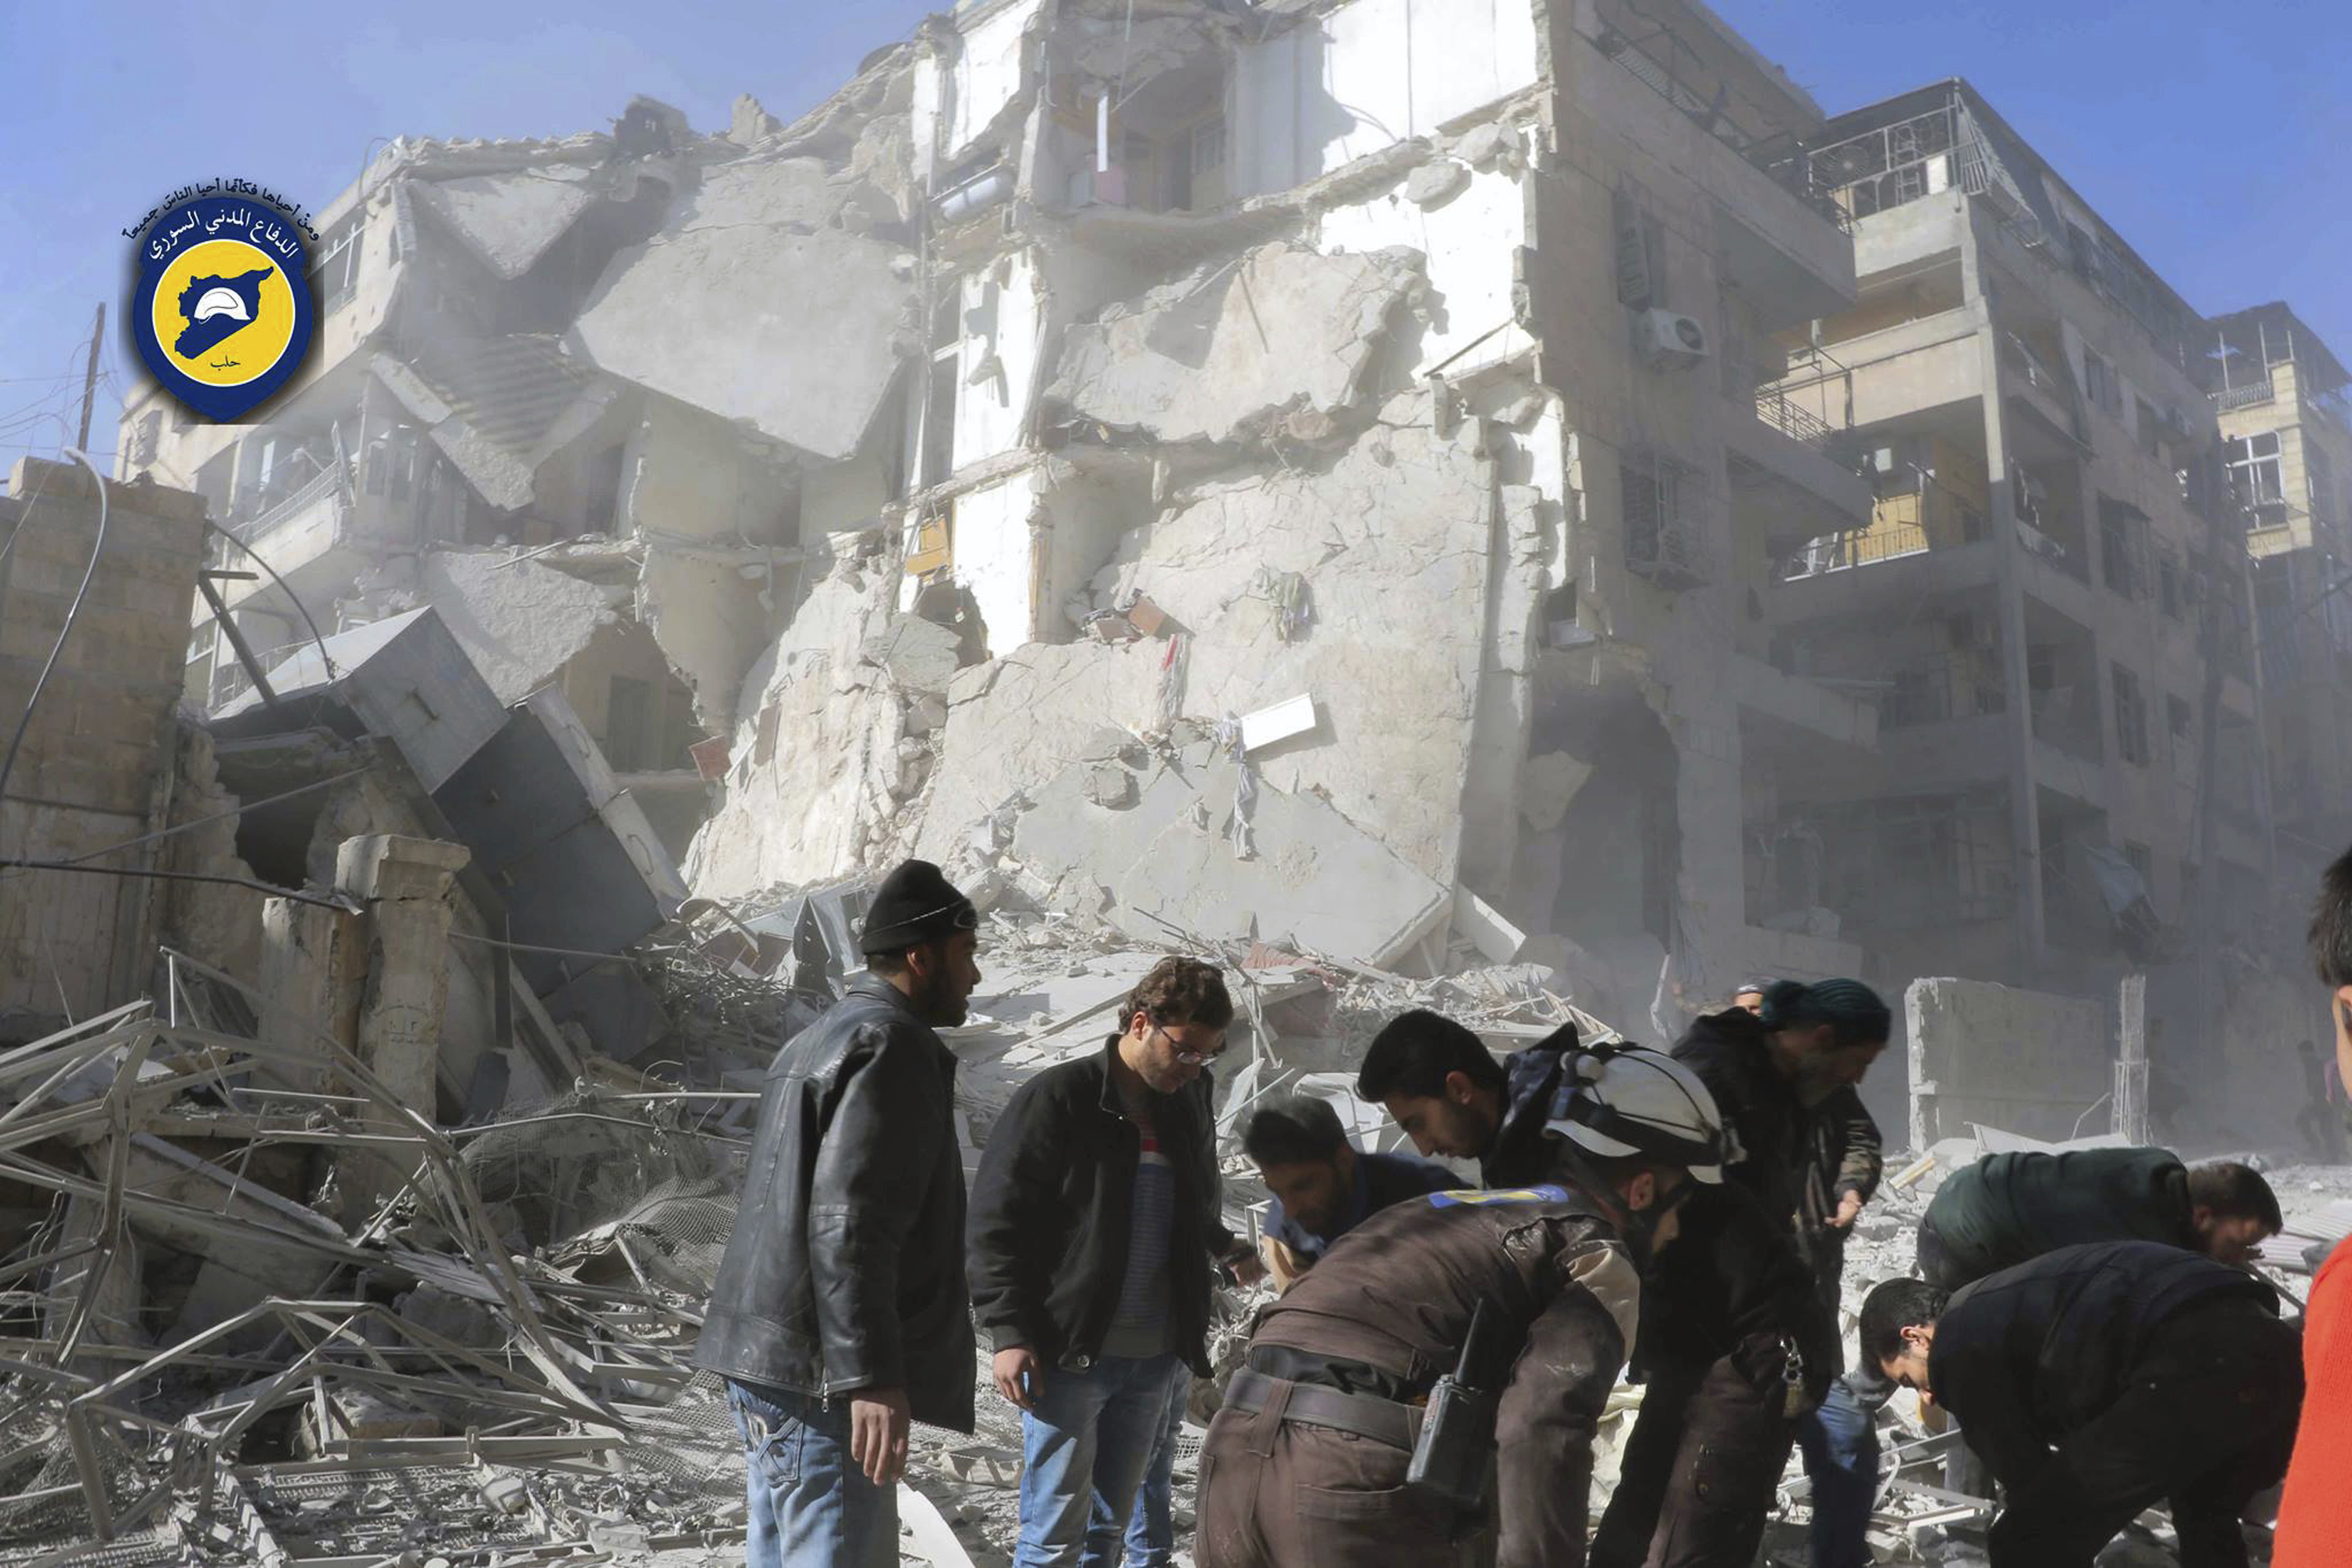 This photo provided by the Syrian Civil Defense White Helmets, which has been authenticated based on its contents and other AP reporting, shows Civil Defense workers and Syrian citizens inspect damage buildings after airstrikes hit the Seif al-Dawleh neighborhood in Aleppo, Syria, Saturday, Nov. 19, 2016.